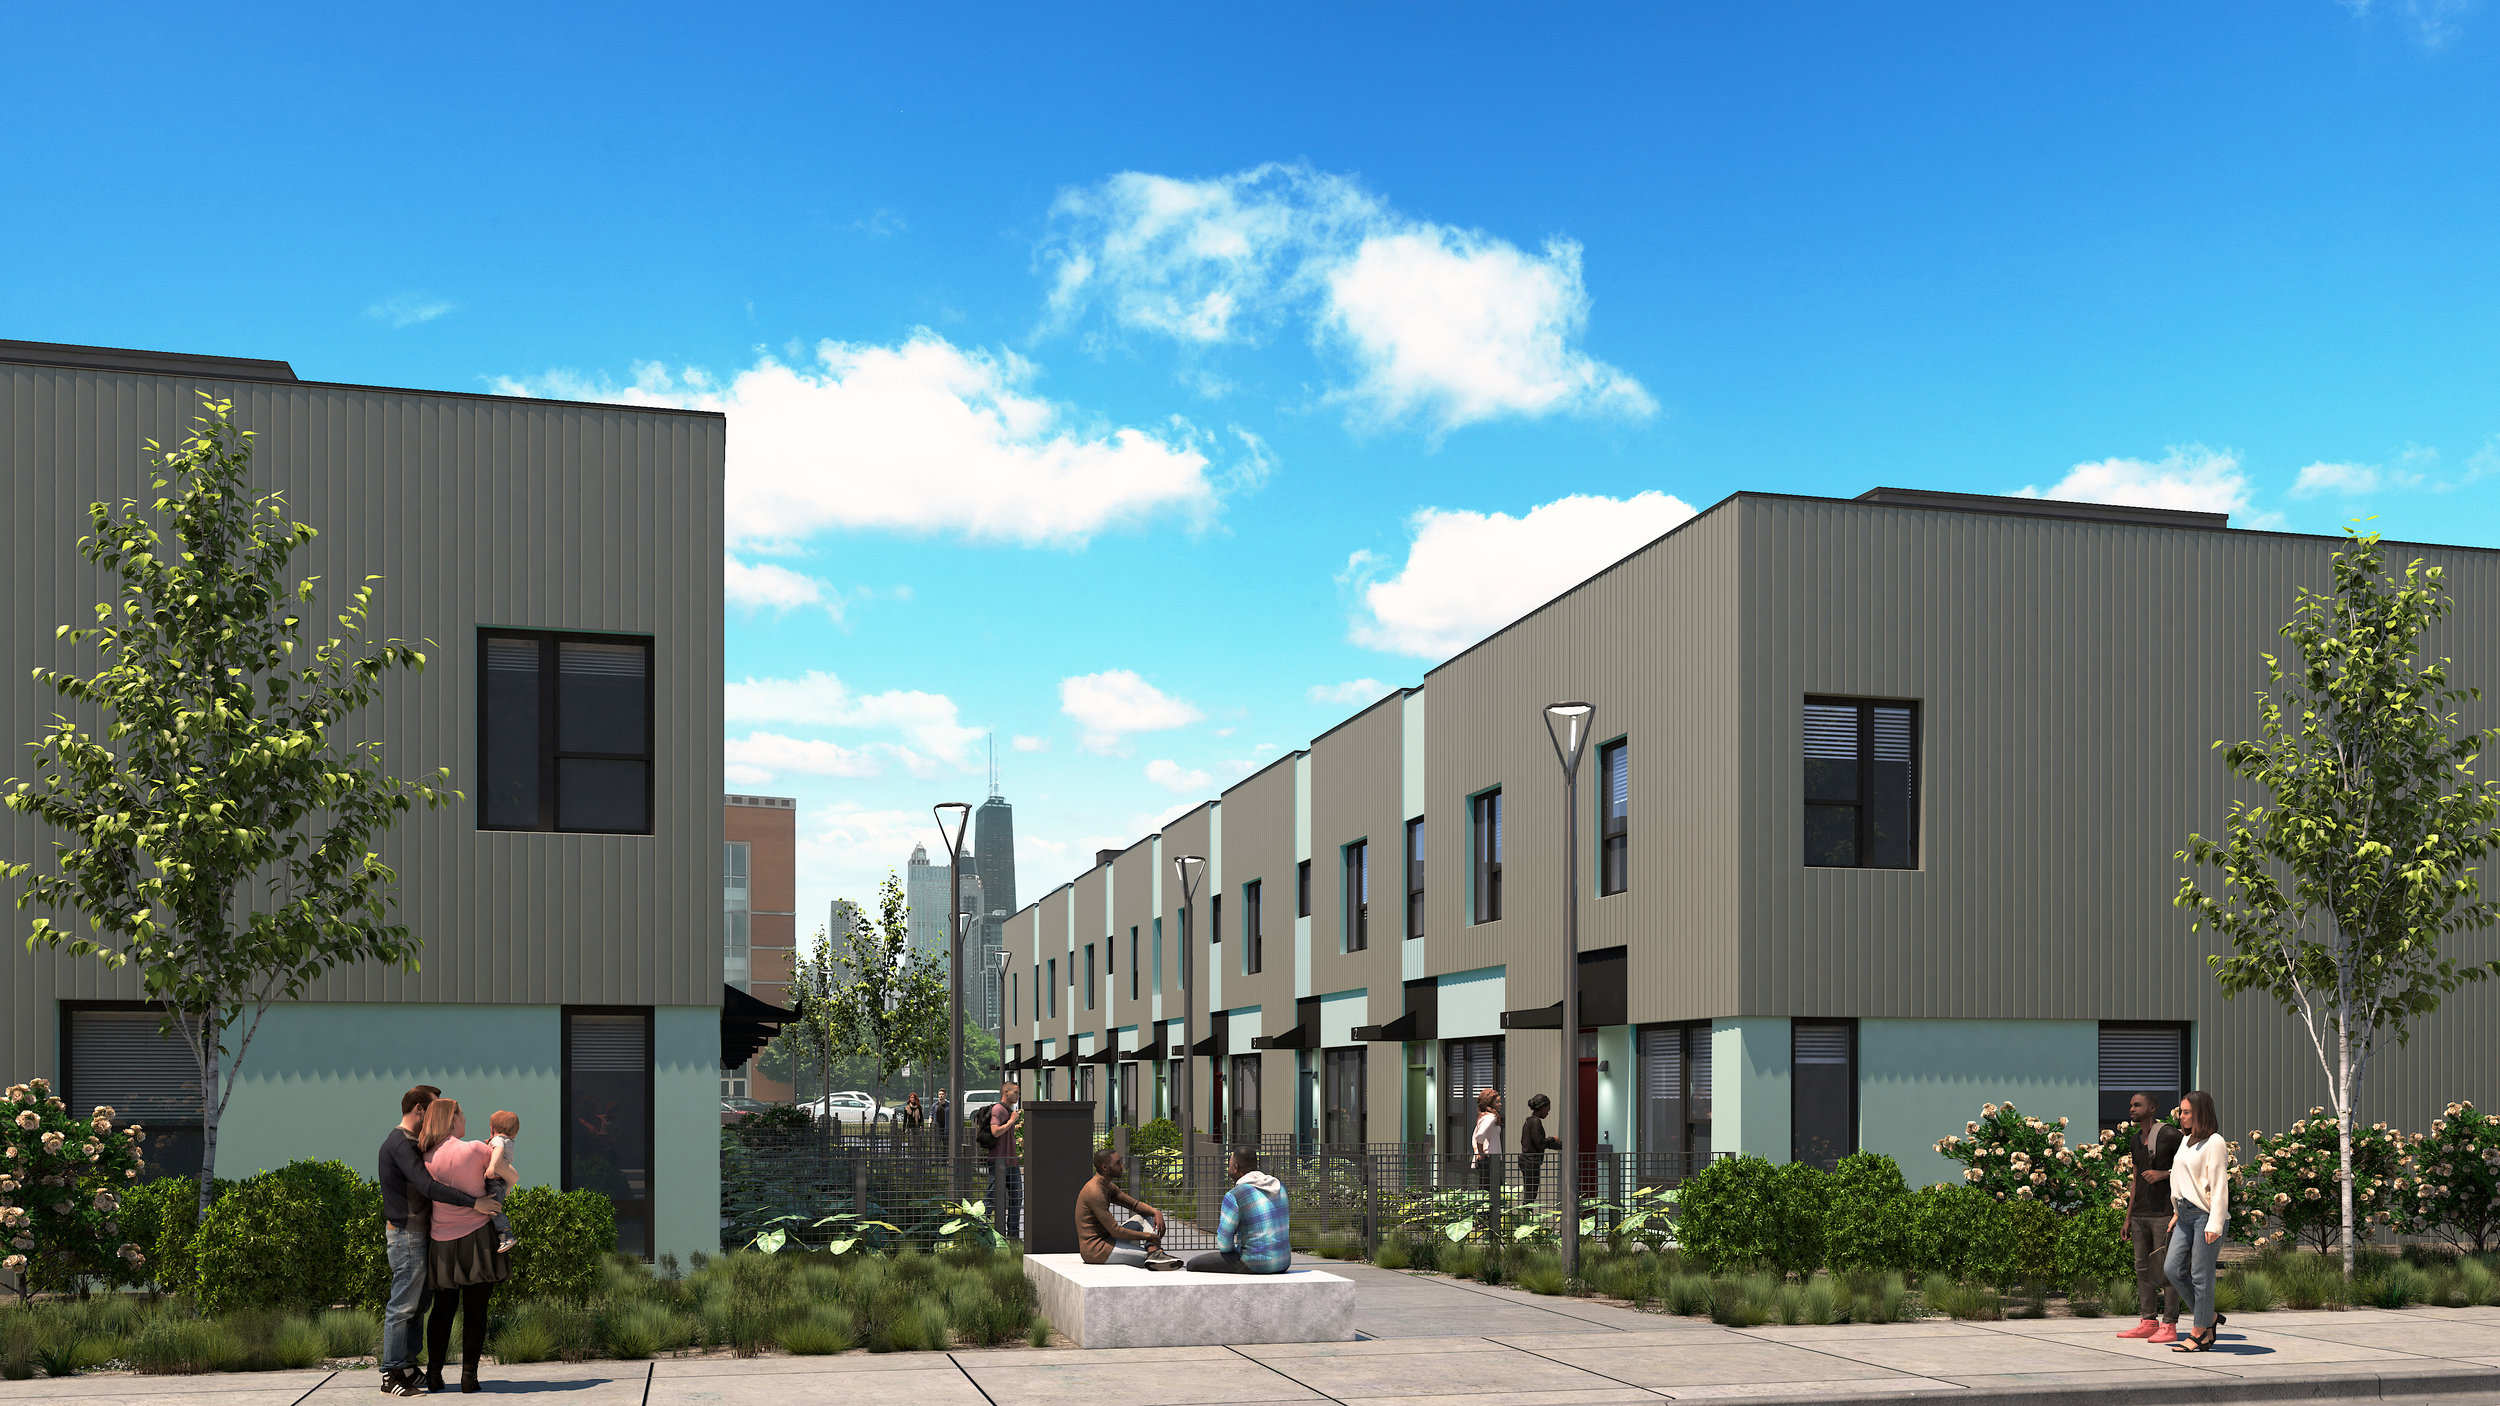 P.S. you're onto something   Contemporary 2 + 3-bedroom townhomes